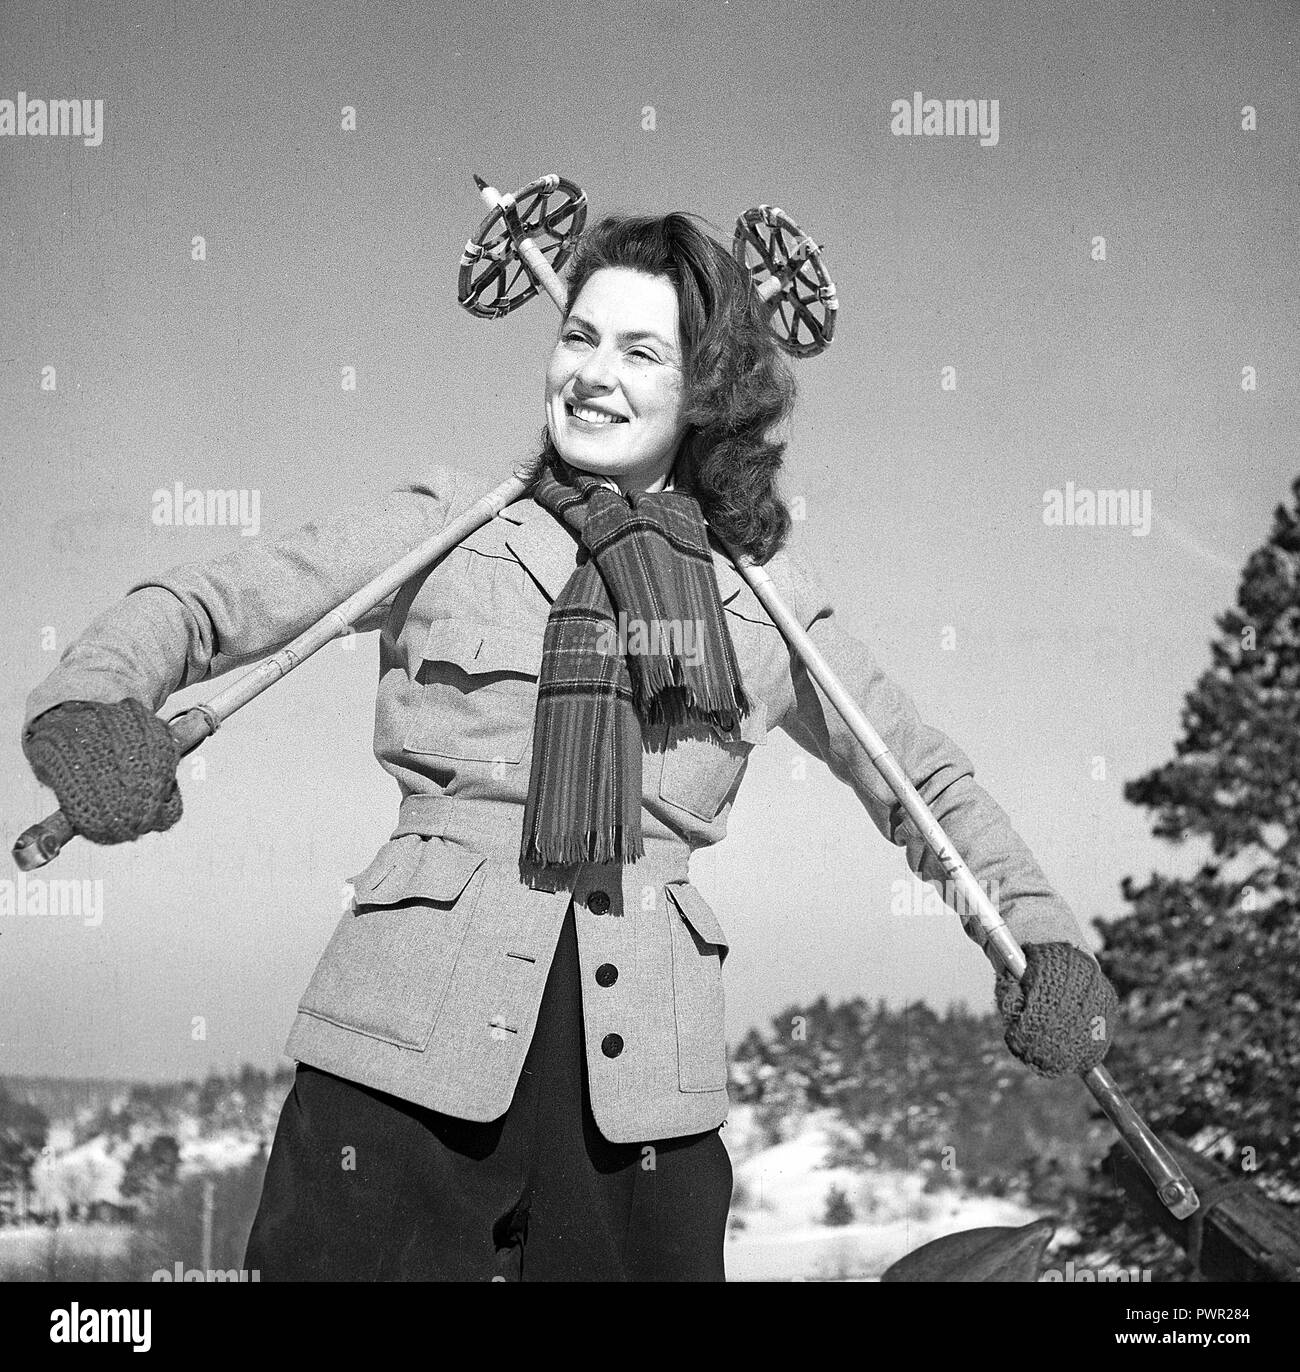 Winter in the 1940s. Actress Viveca Lindfors, 1920-1995. Pictured here ready to go cross country skiing. She is posing with the ski poles graphically behind her back.  Sweden 1948. Photo Kristoffersson ref AA16-2 - Stock Image